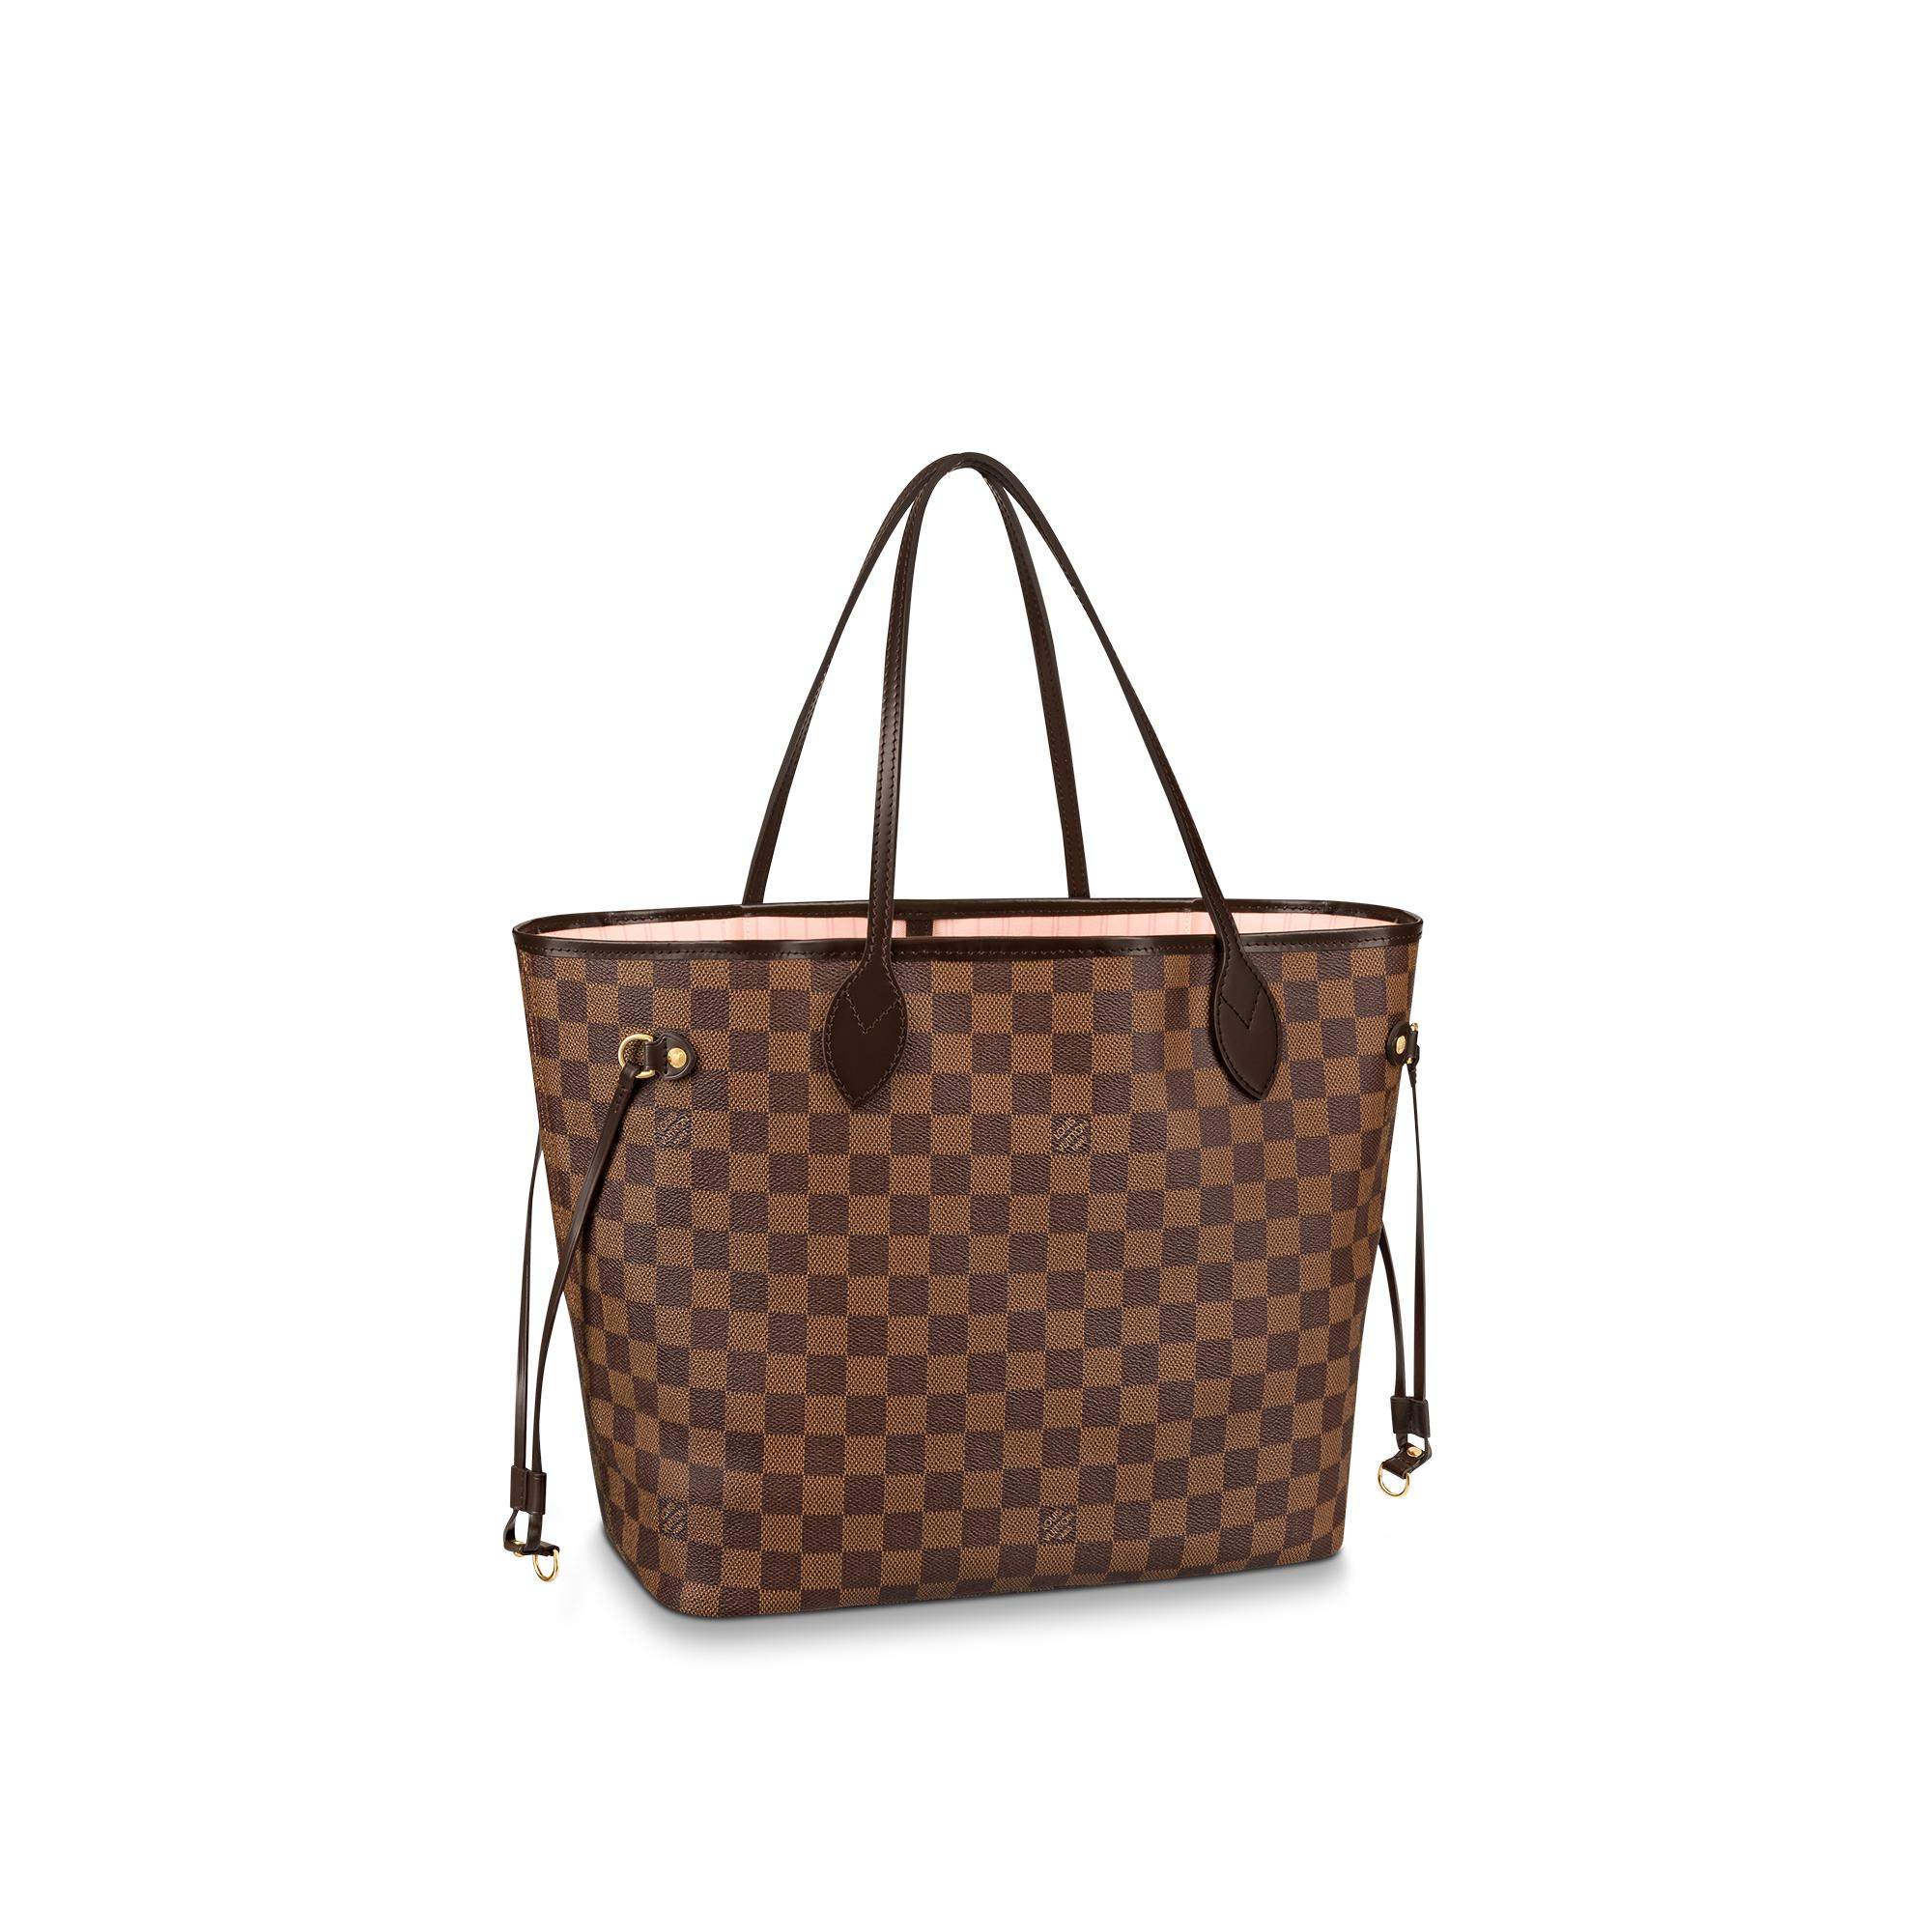 Louis Vuitton Tivoli Vs Palermo Neverfull Mm Damier Ebene Canvas Handbags Louis Vuitton